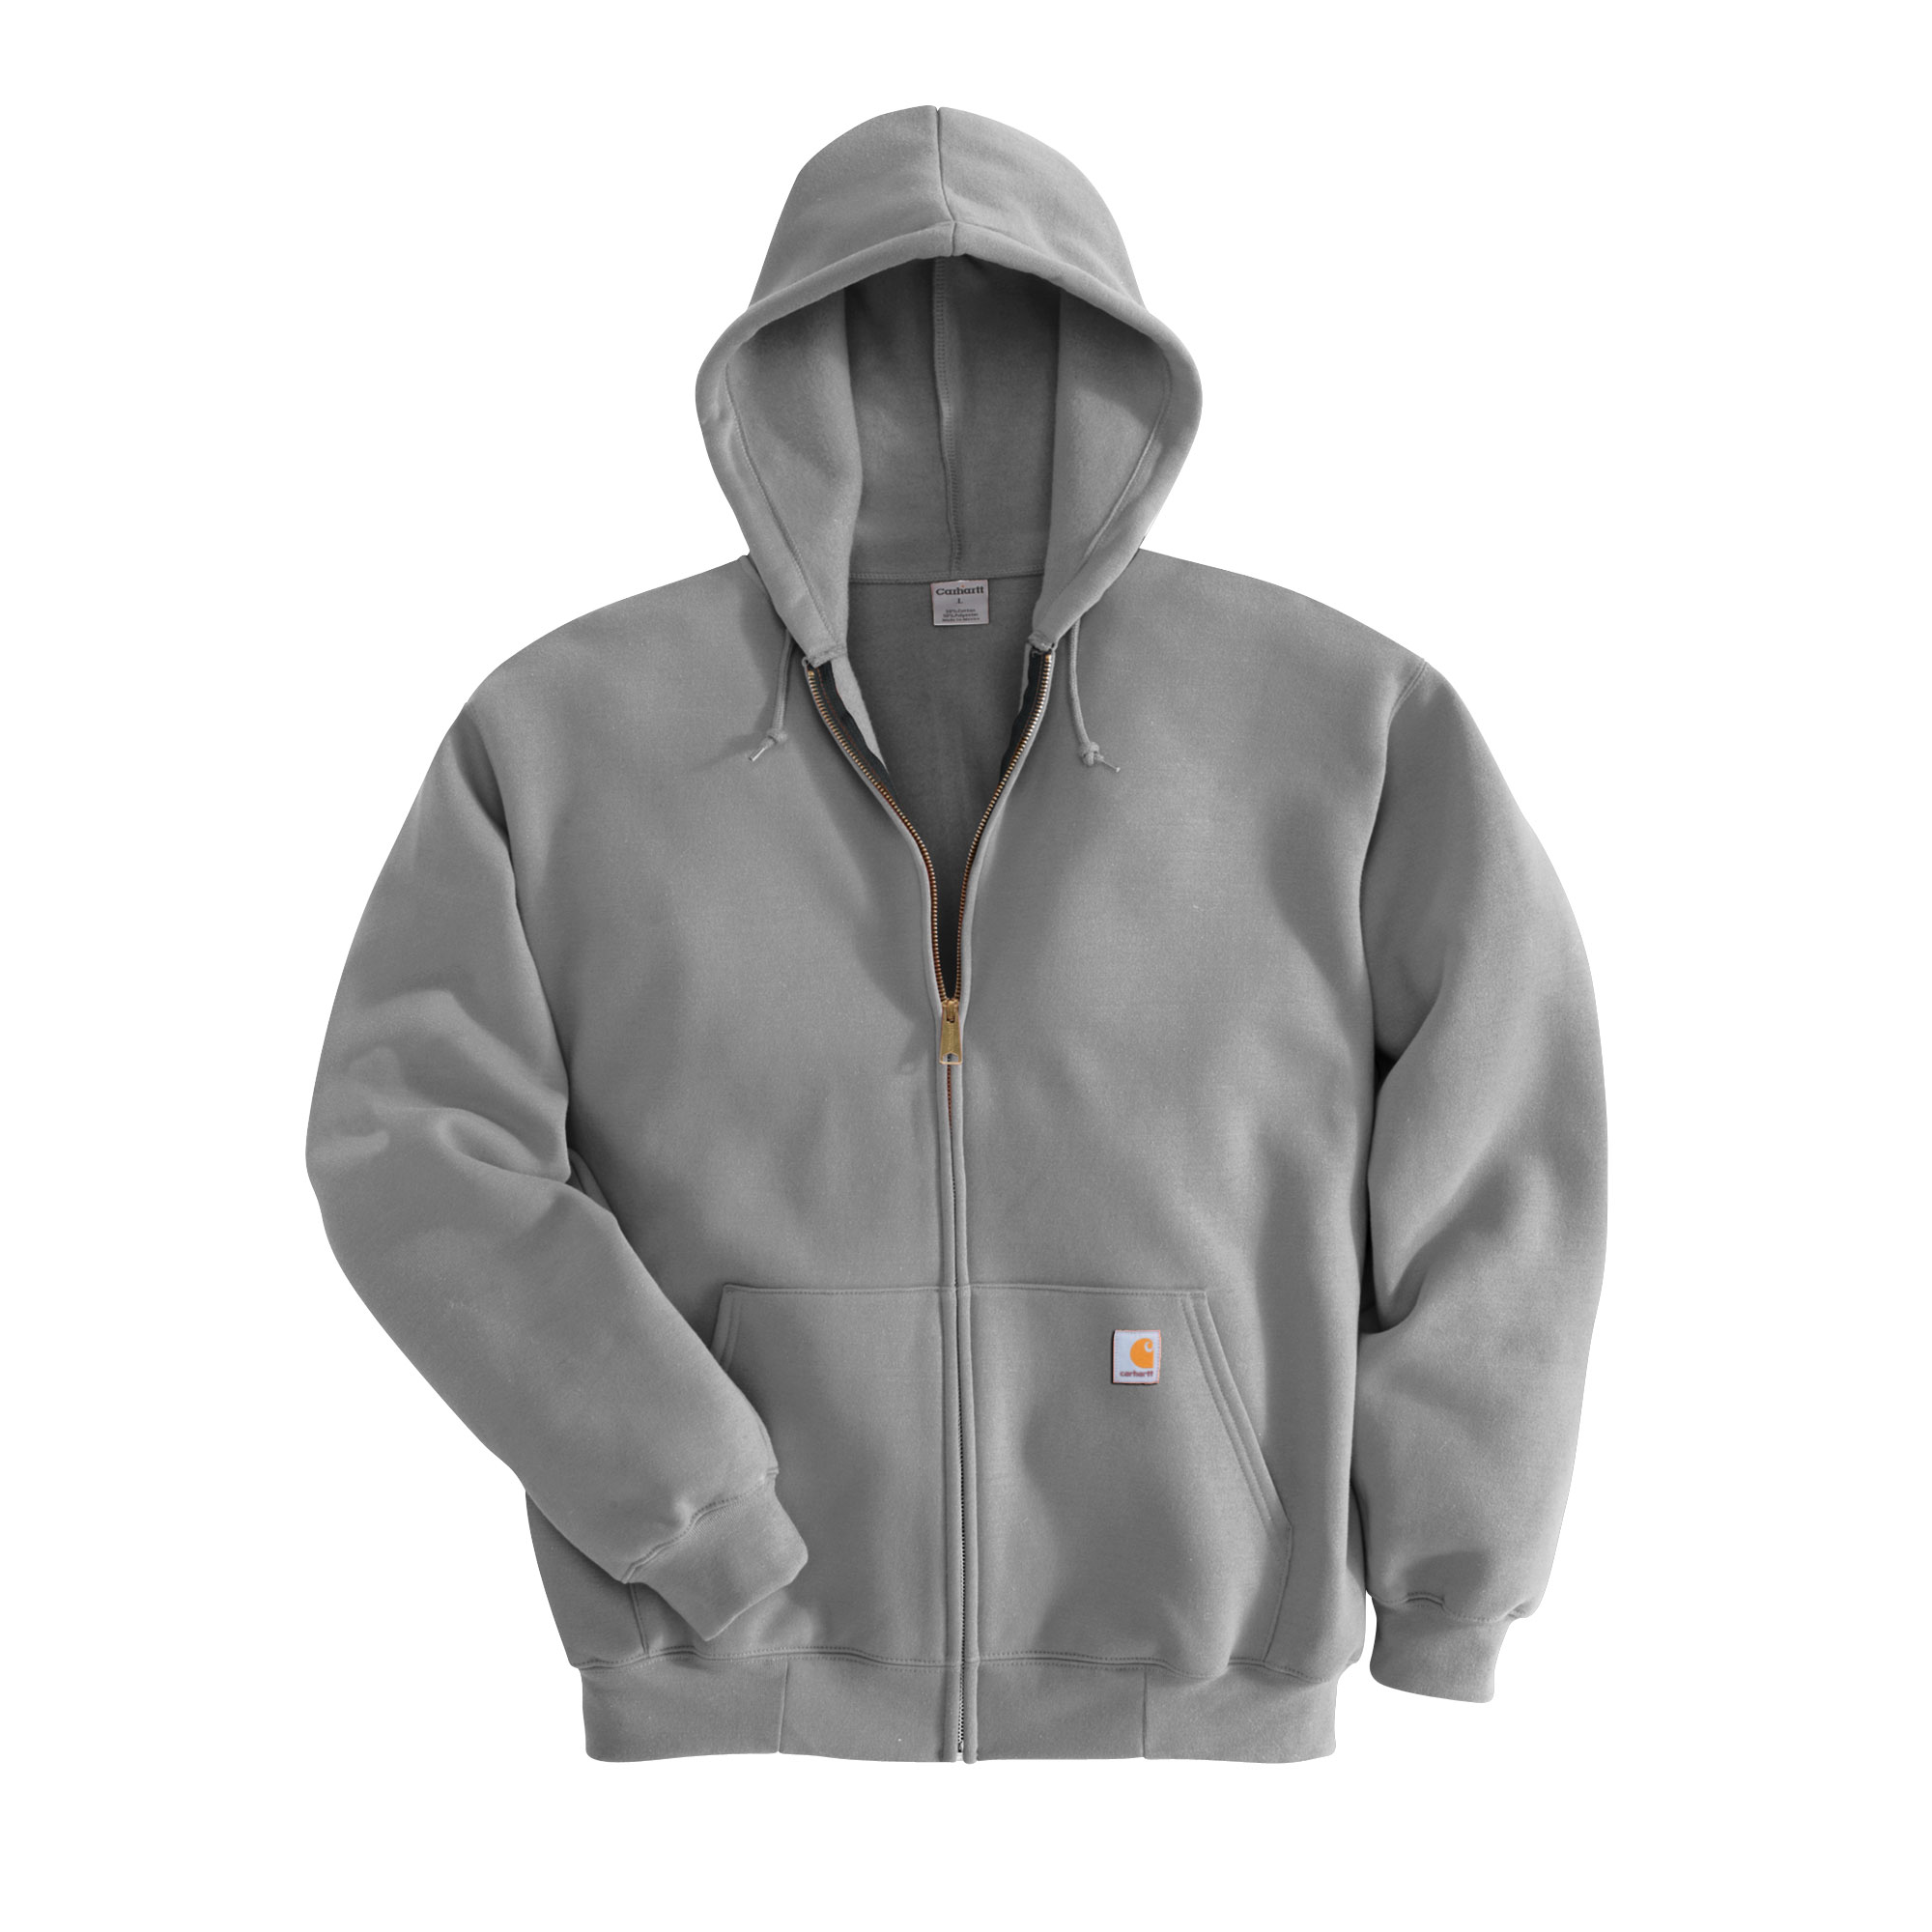 Carhartt Midweight Zip-Front Hooded Sweatshirt - Navy